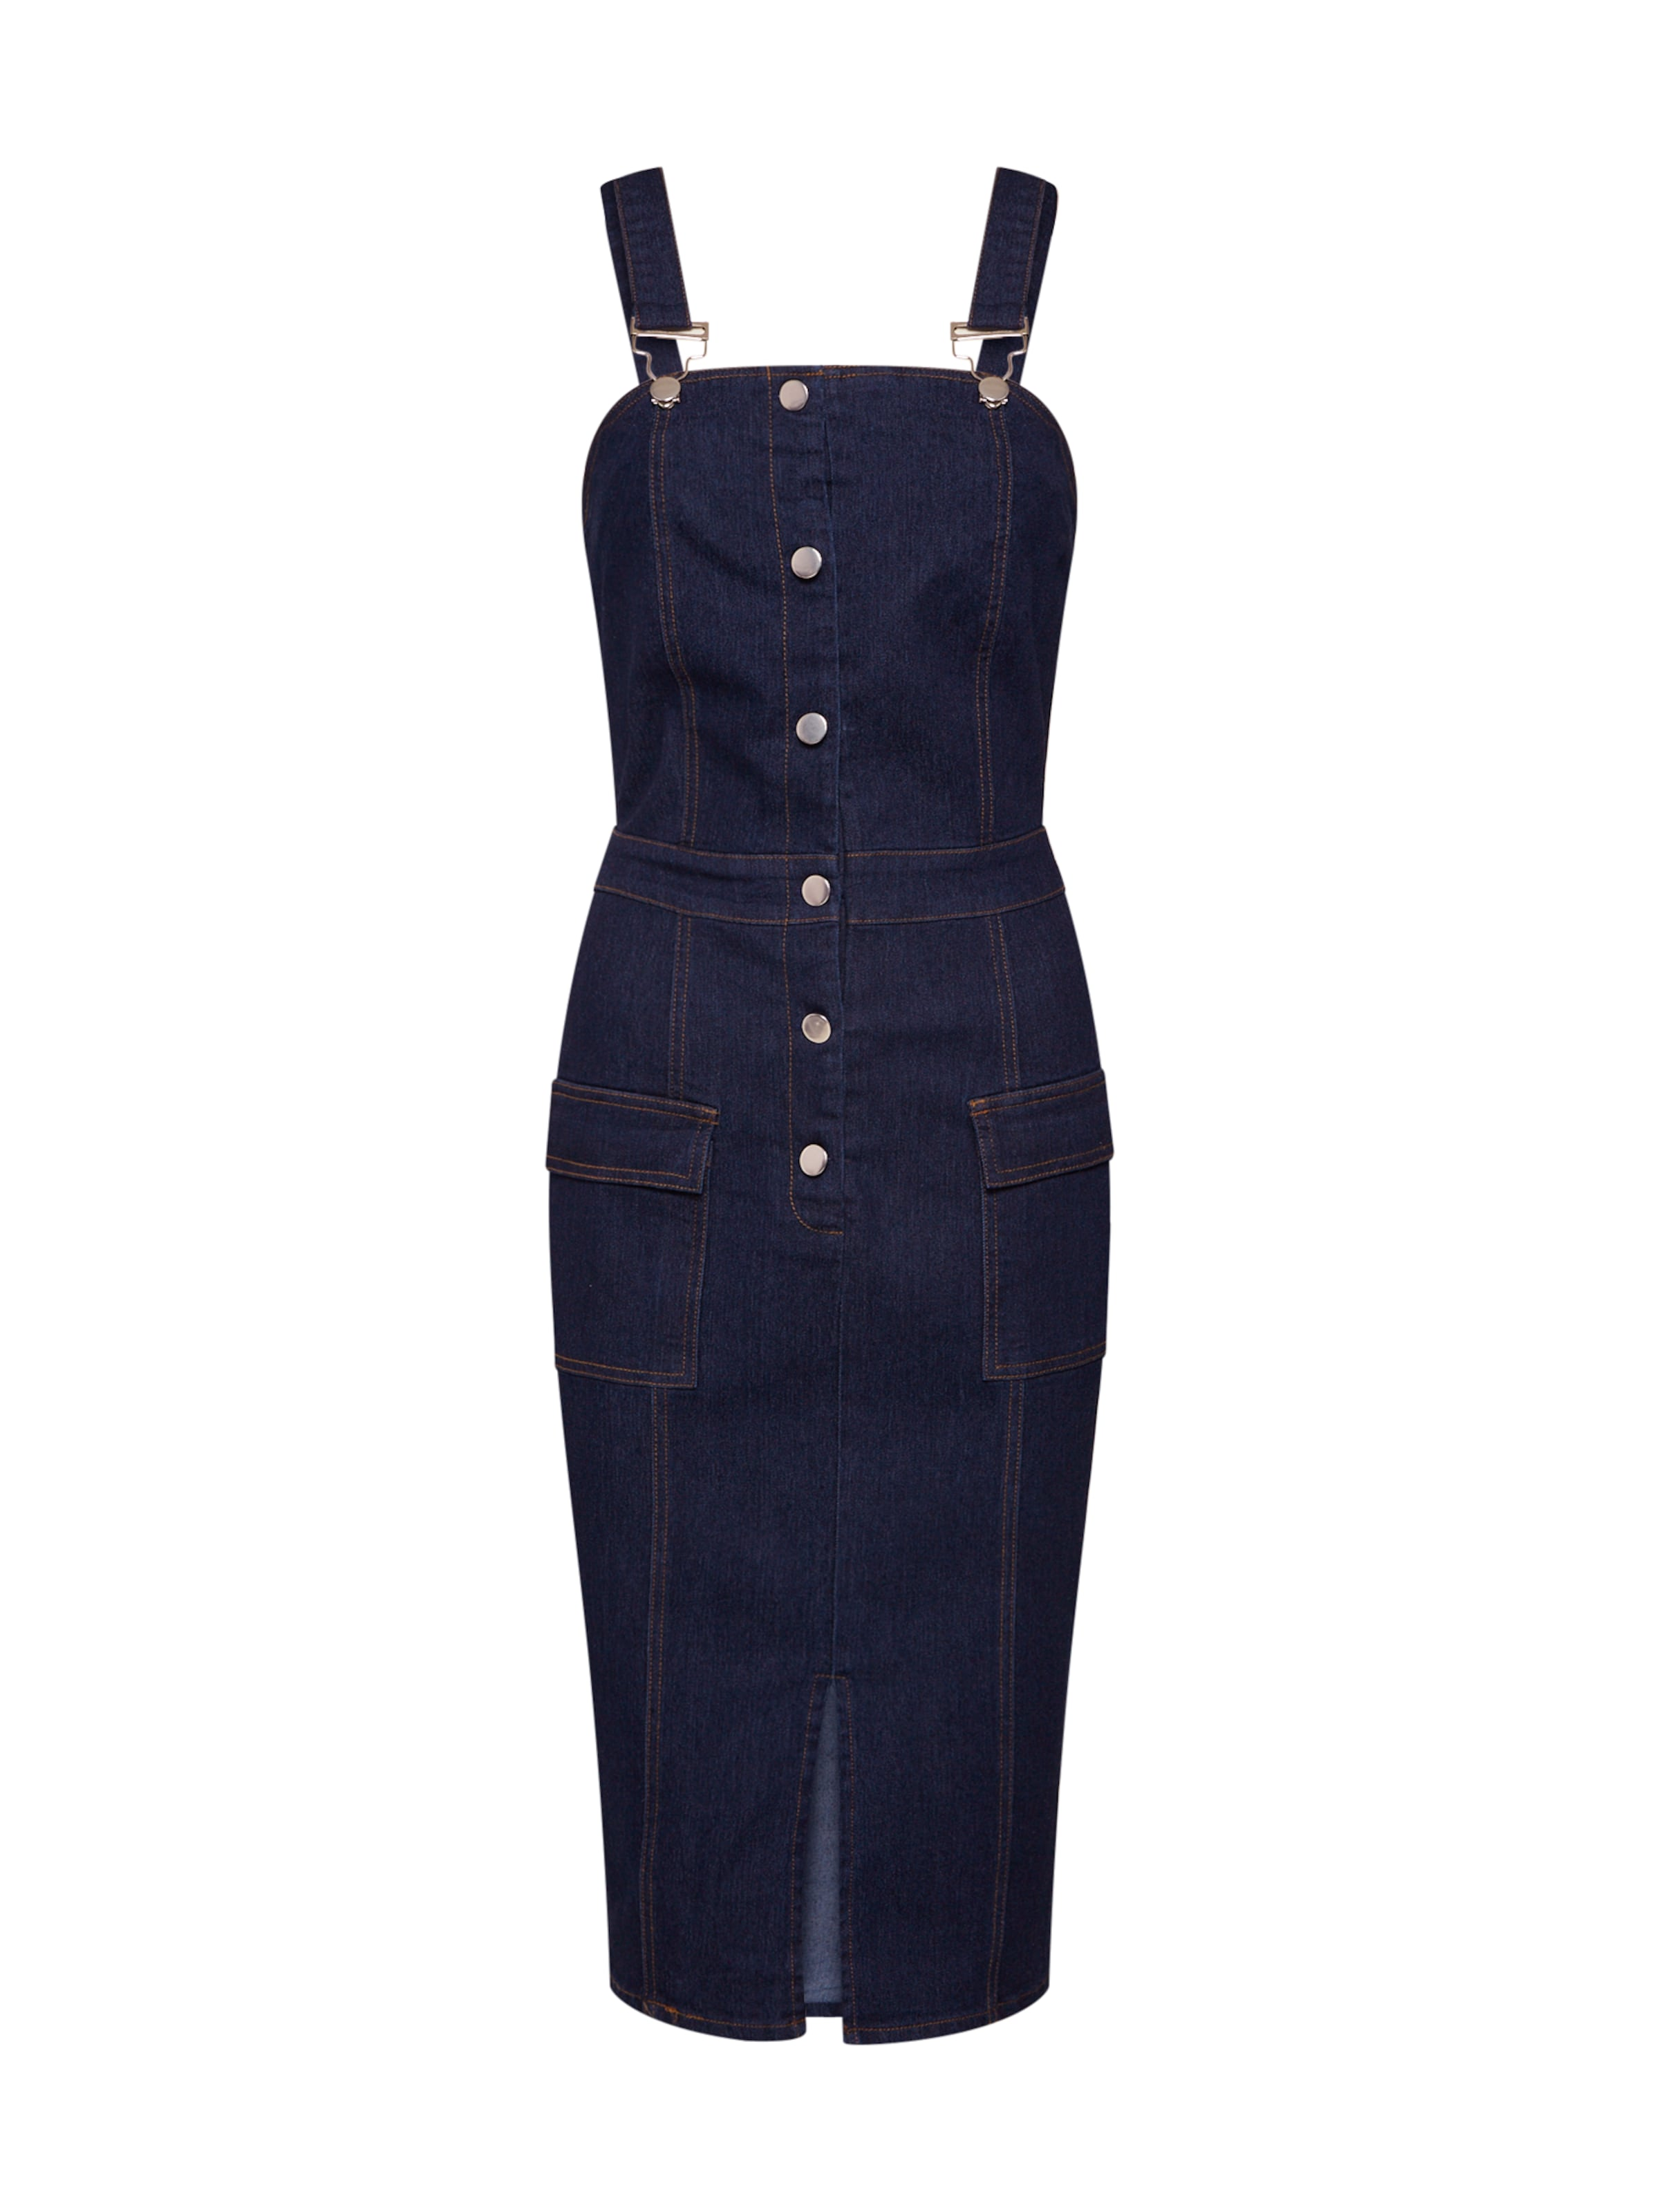 Blue Kleid Denim Denim Kleid Missguided In Blue Missguided In In Missguided Kleid 8w0OknP